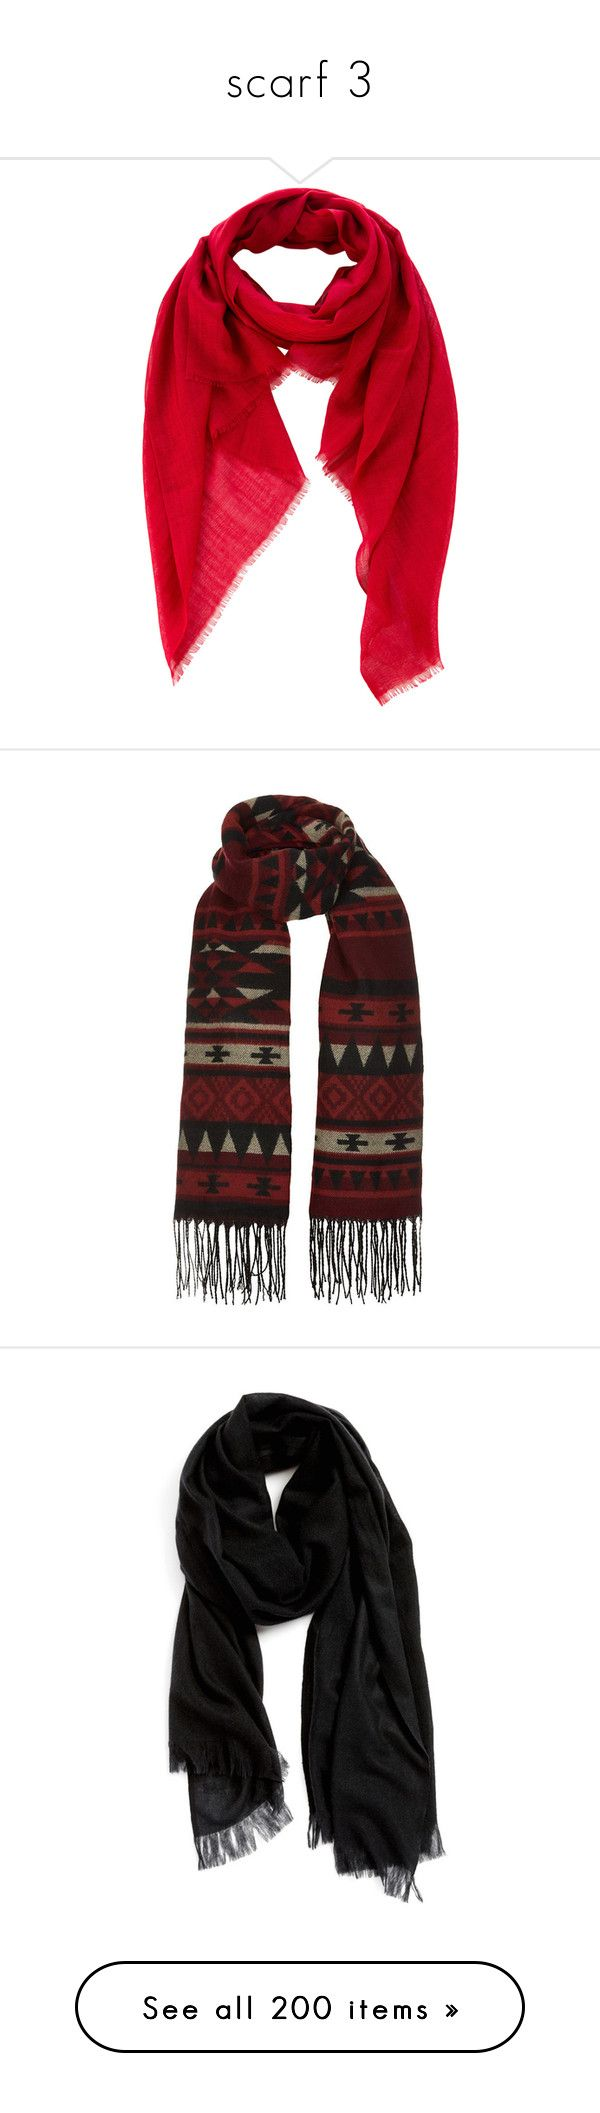 """""""scarf 3"""" by aleftina-alla ❤ liked on Polyvore featuring accessories, scarves, red, cashmere scarves, agnona, fringe scarves, red shawl, cashmere shawl, aztec scarves and fringed shawls"""